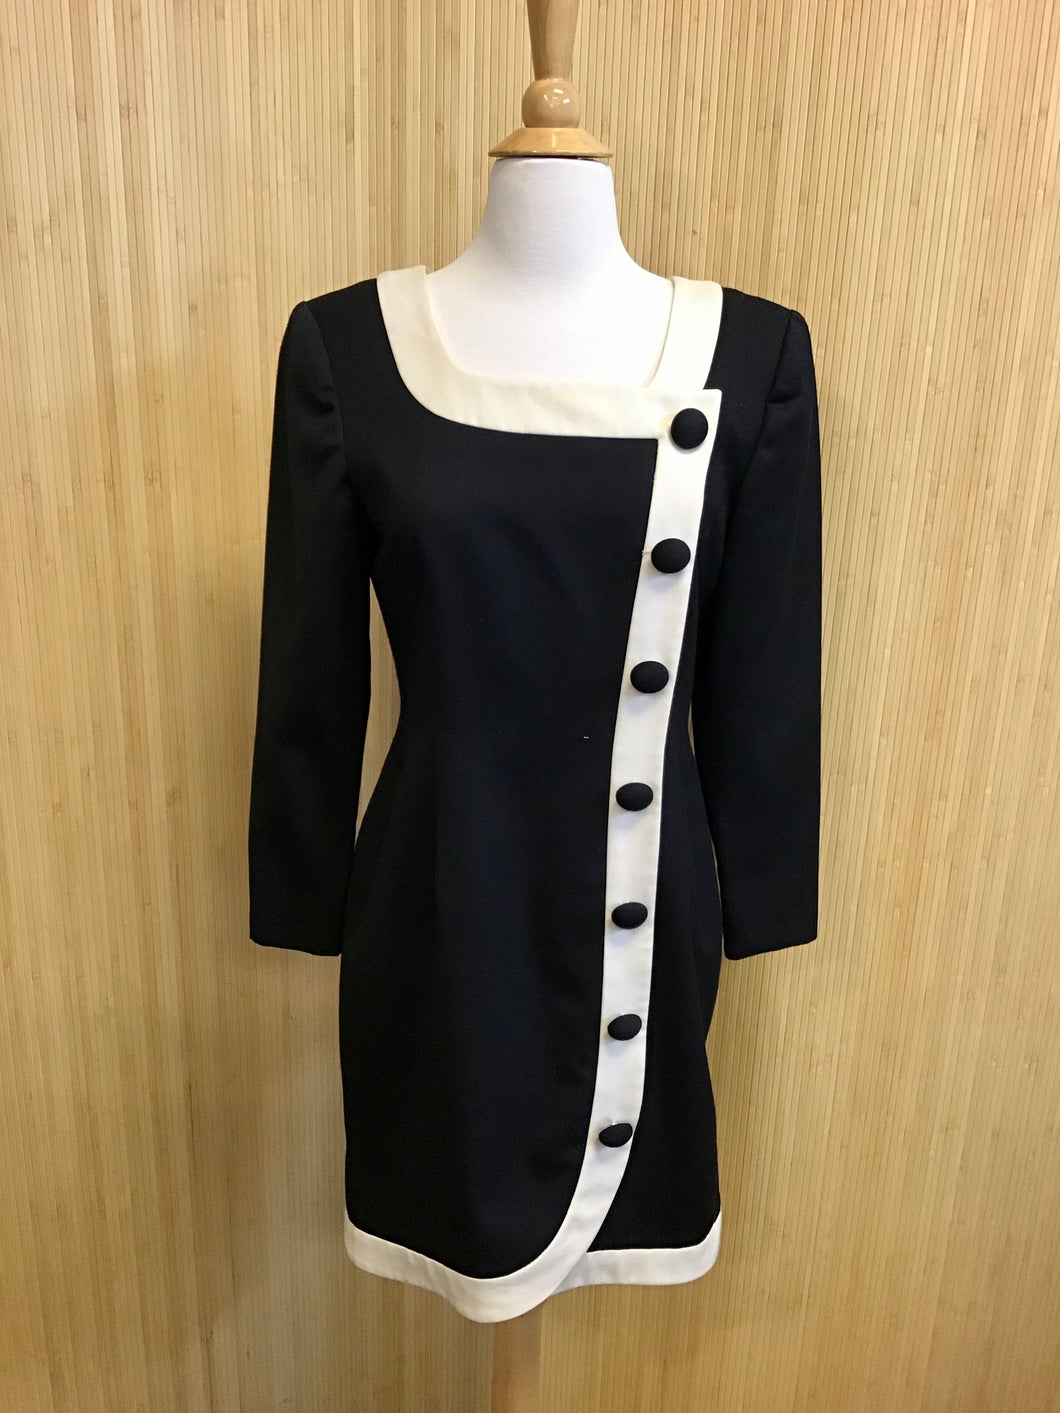 Scaasi Vintage 80's Long Sleeve Dress (M)